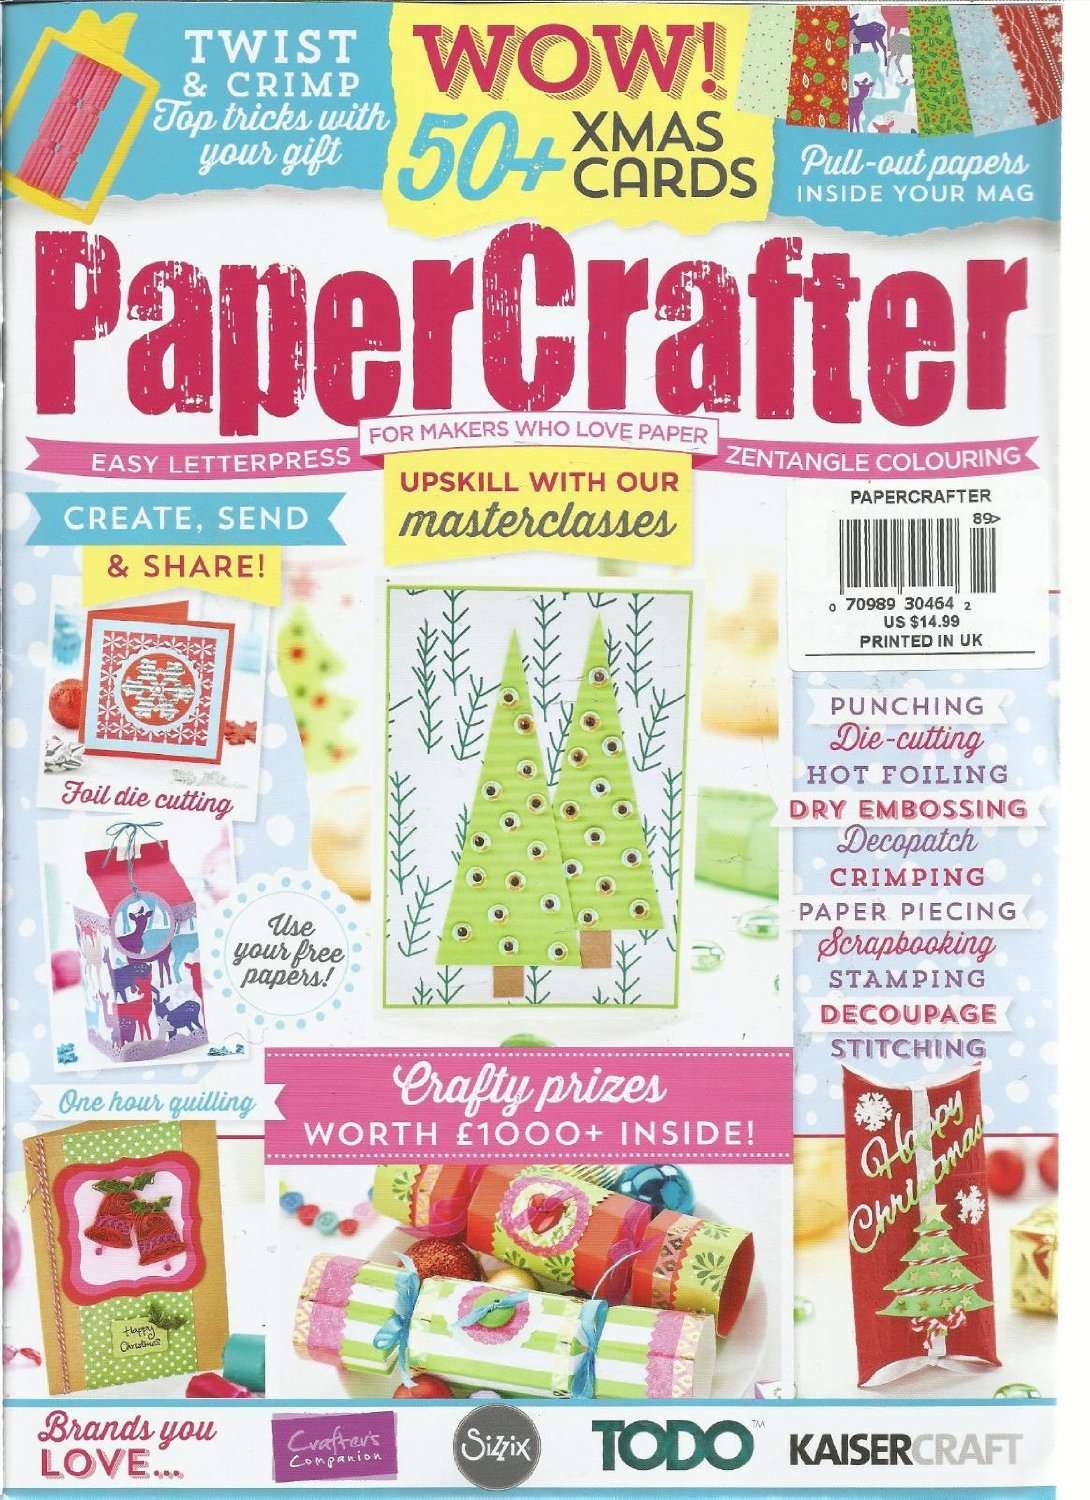 PAPER CRAFTER, FOR MAKERS WHO LOVE PAPER ISSUE, NO 89 ( WOW! 50 + XMAS CARDS )